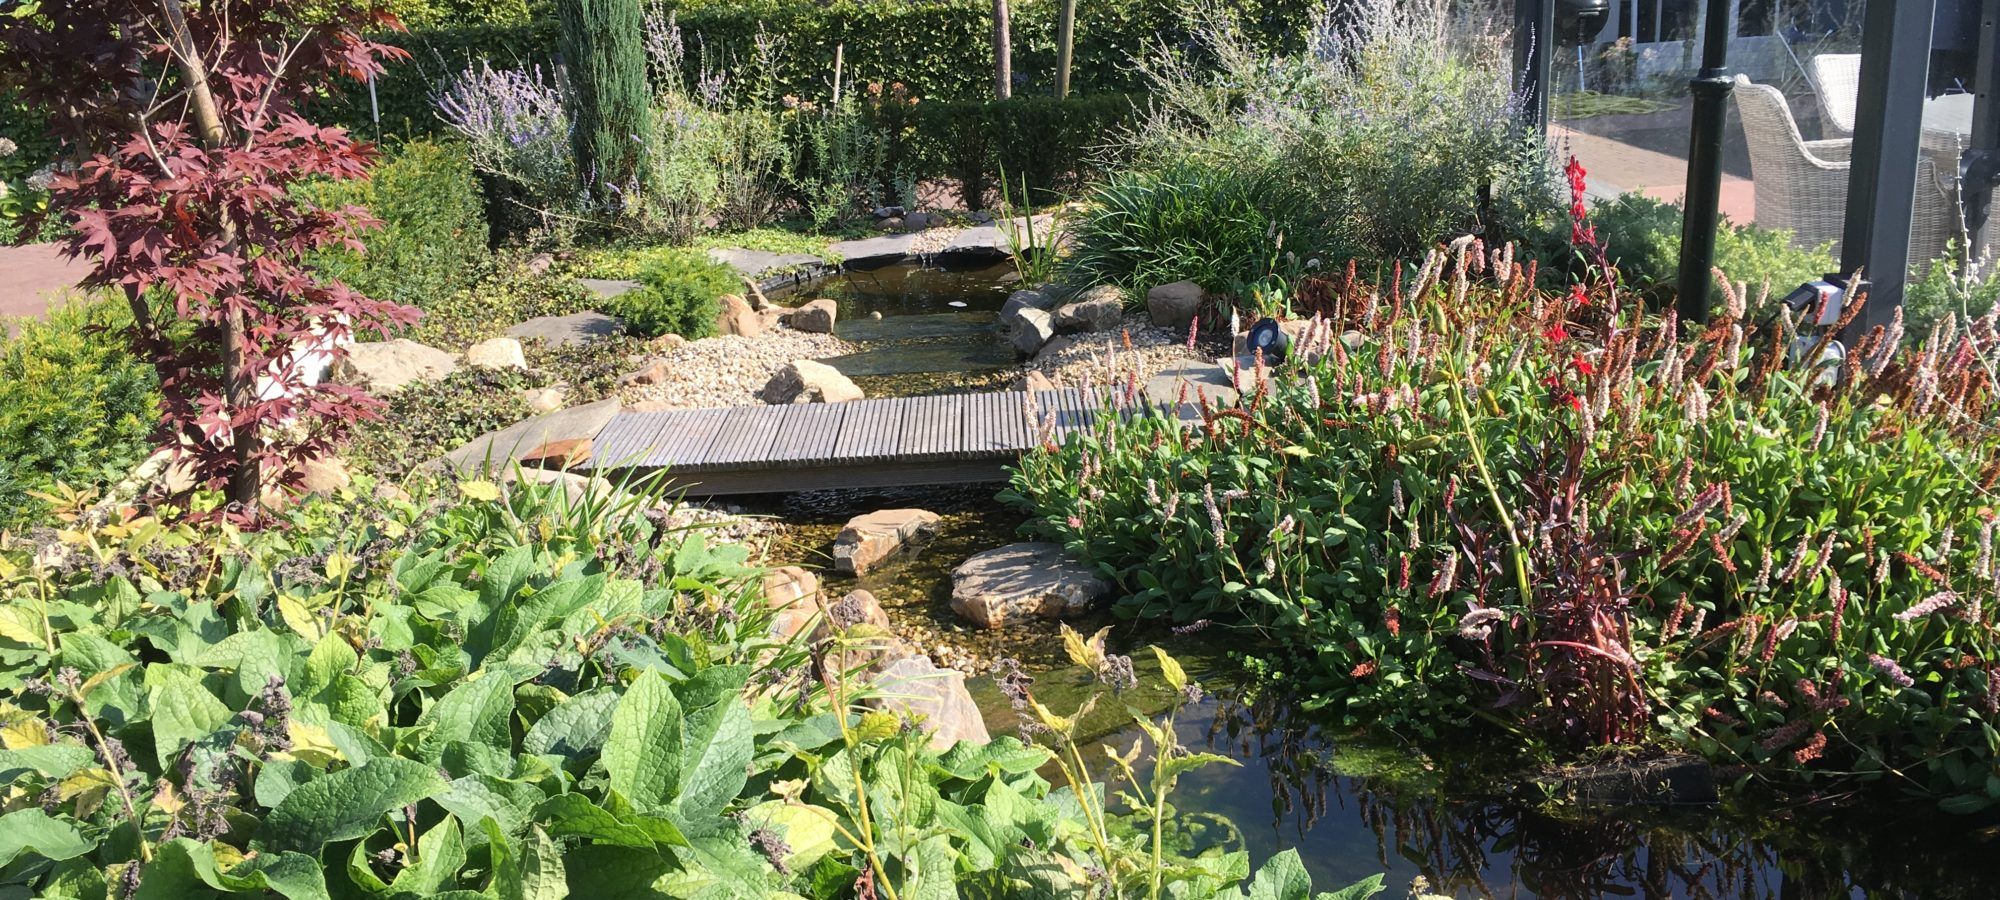 Waterloop in de tuin